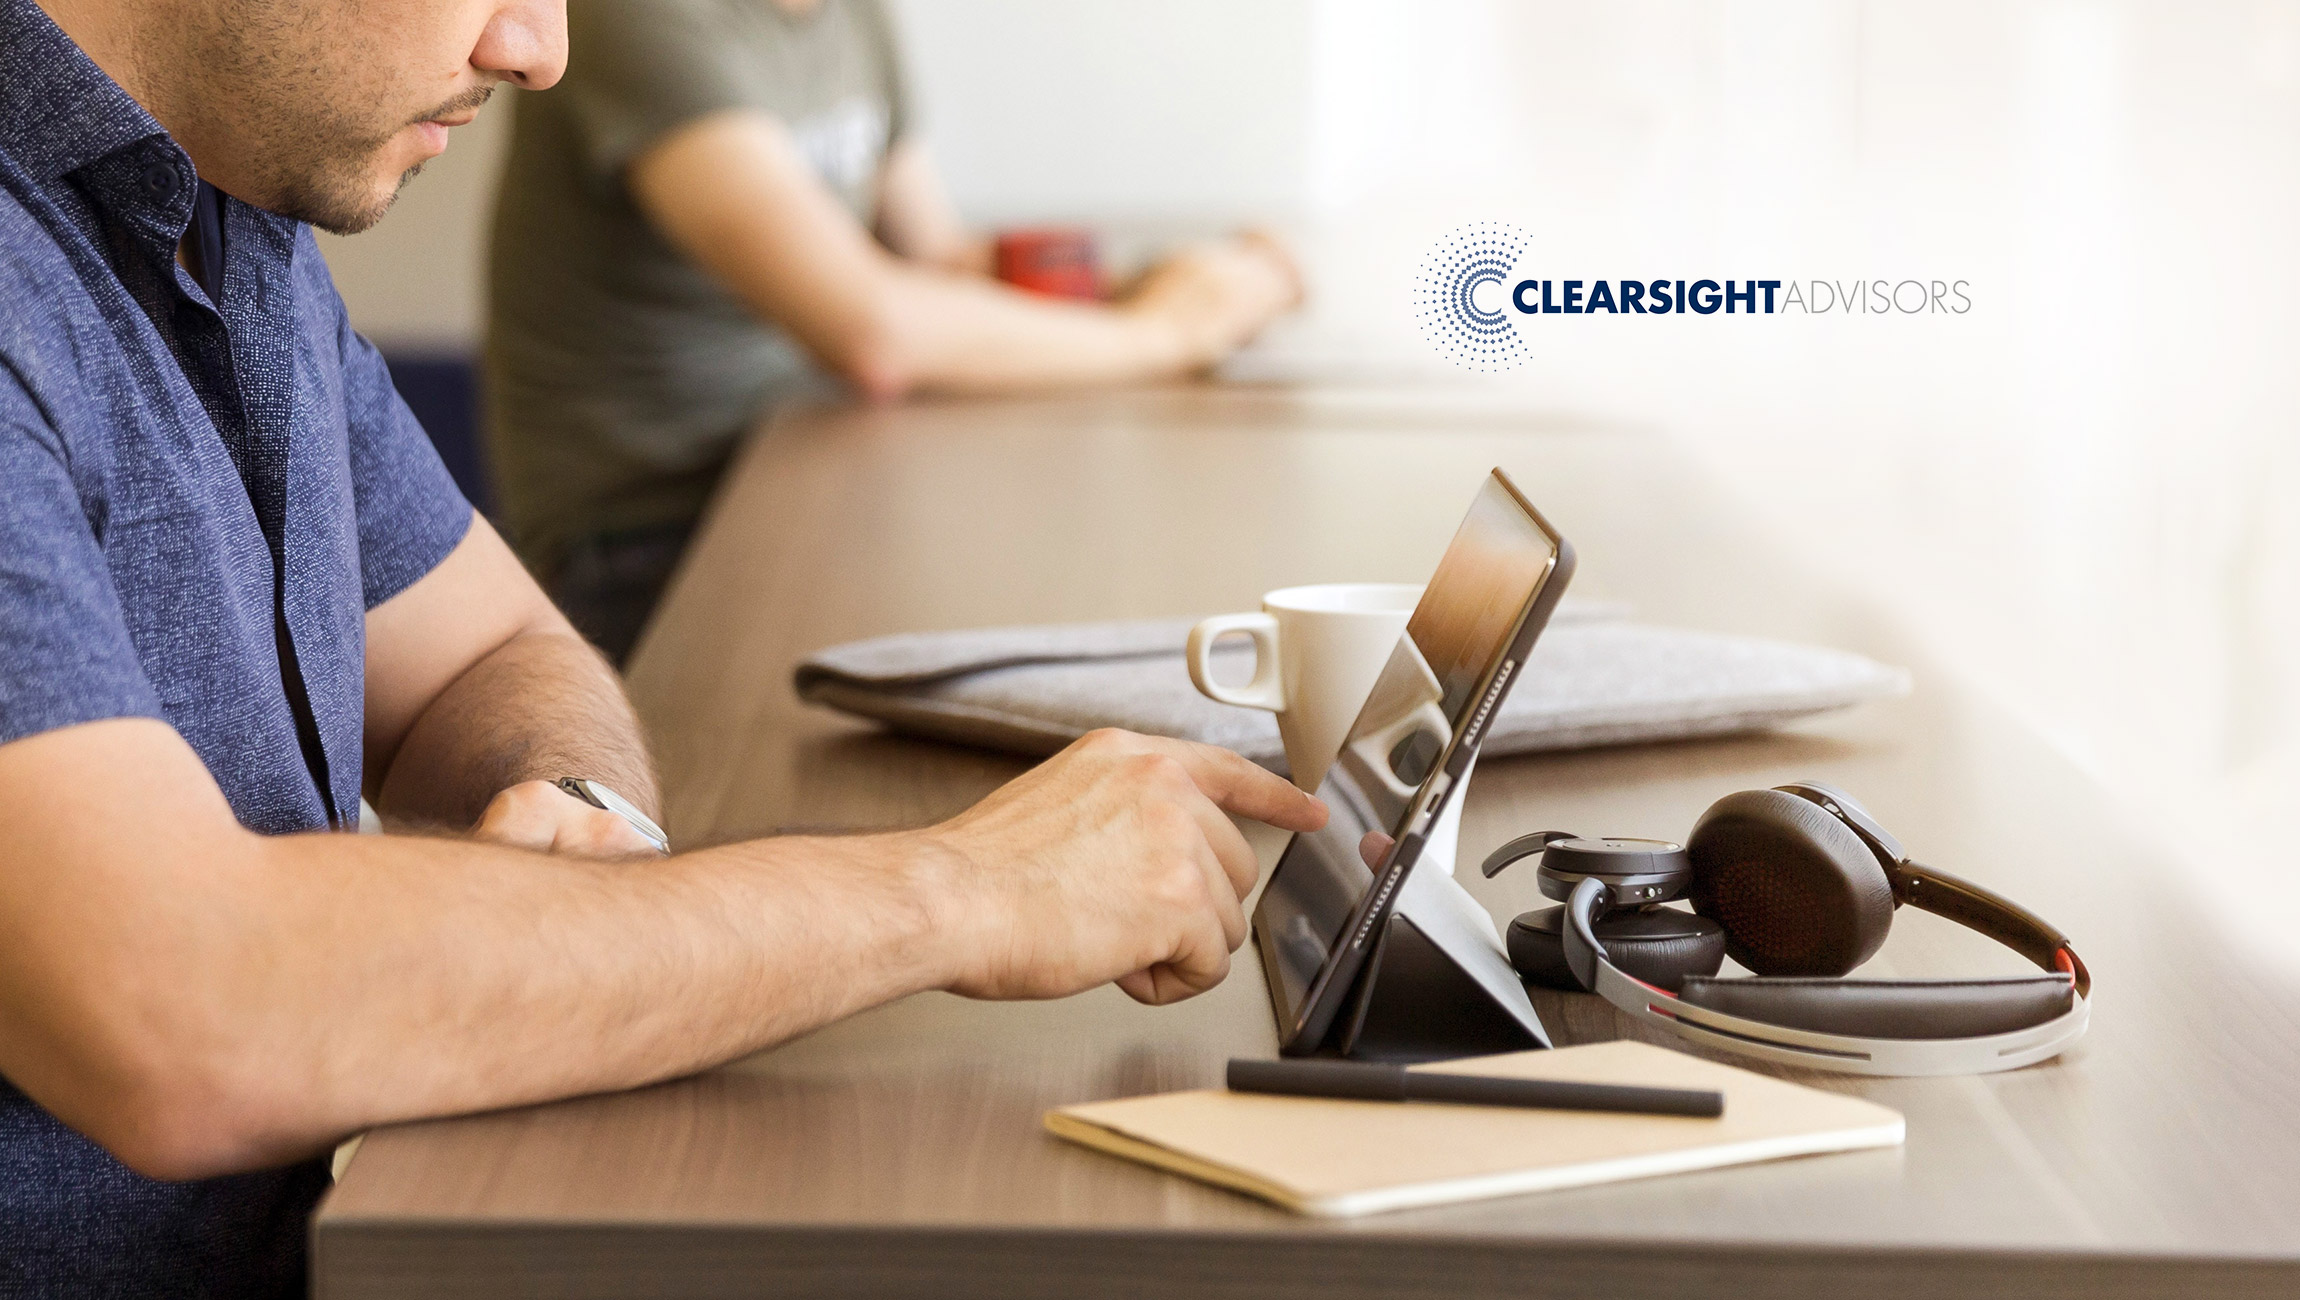 Clearsight Advisors